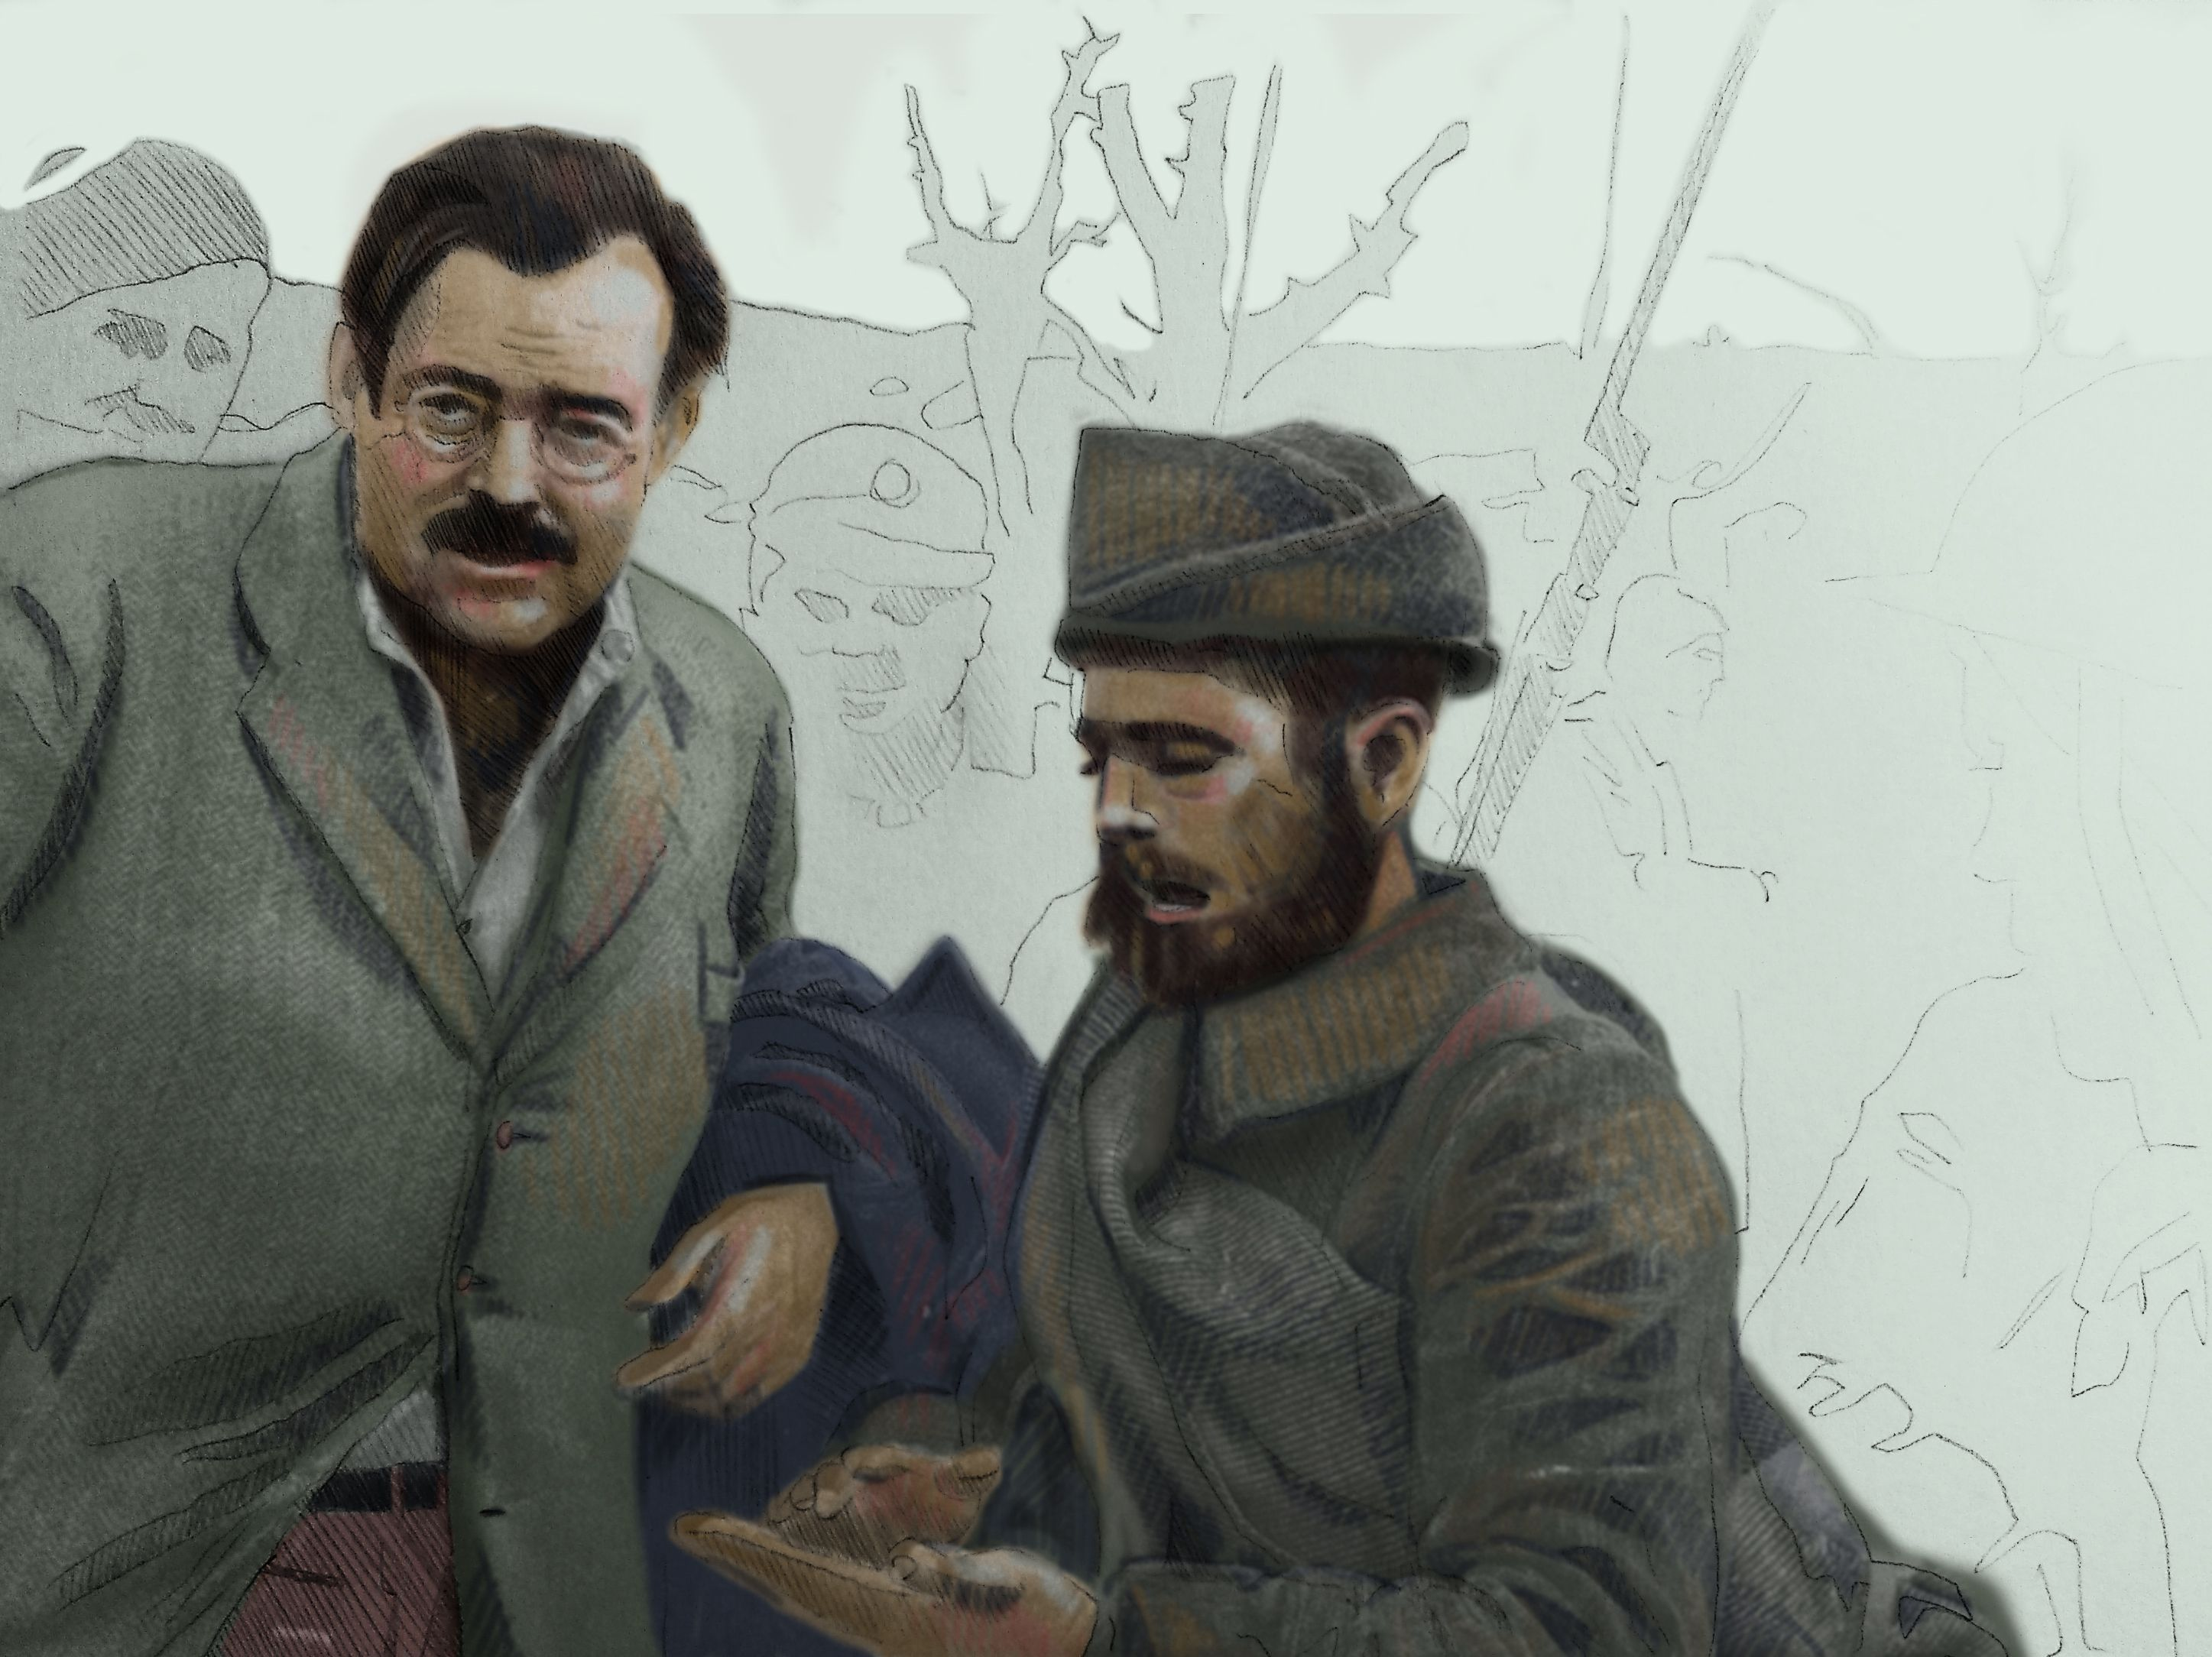 Ernest Hemingway in the Spanish Civil War. (With images